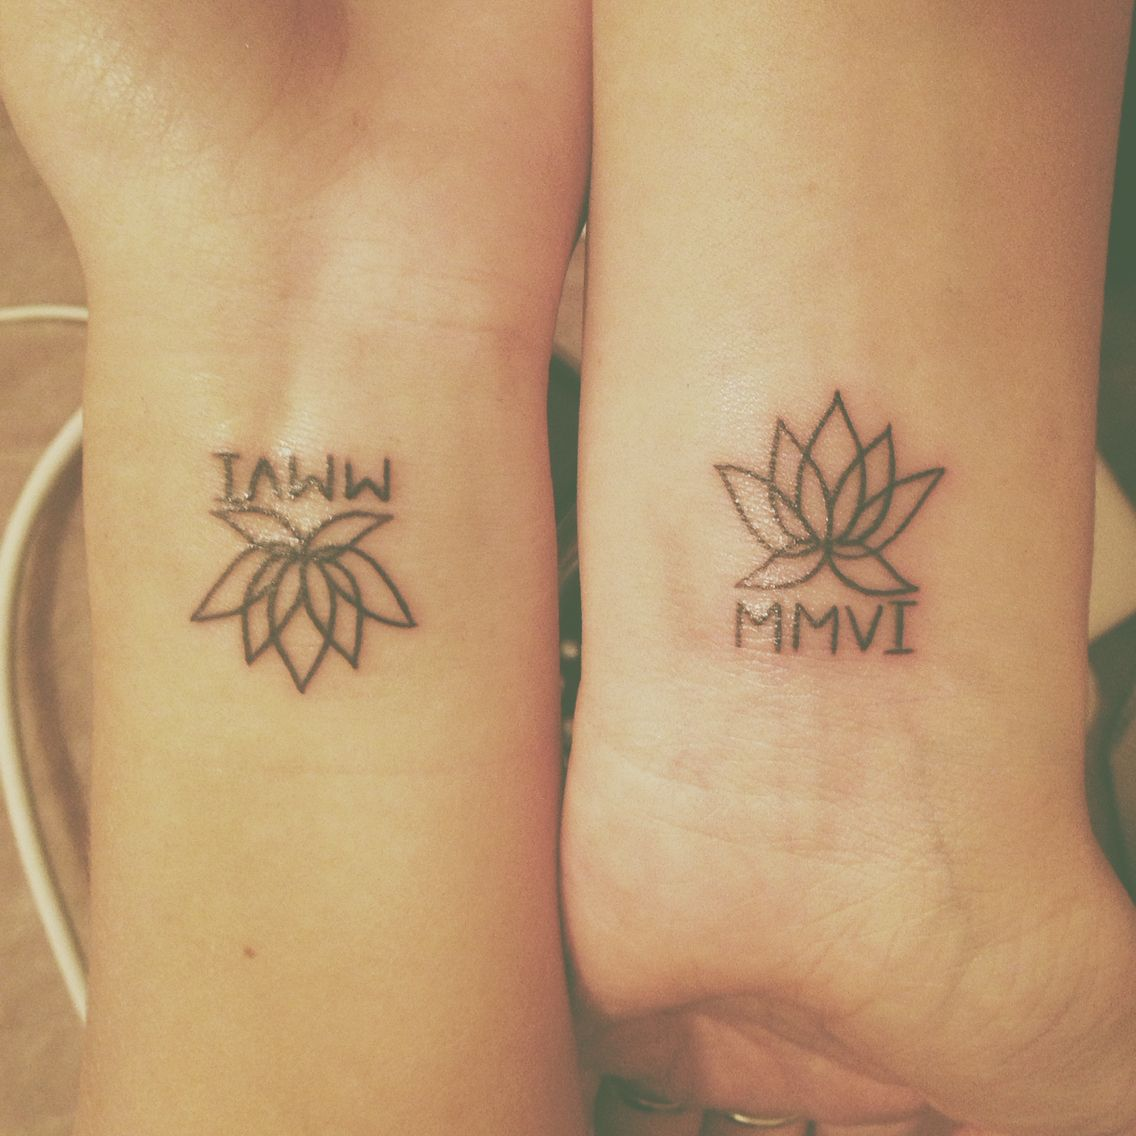 Best friend tattoos lotus flower and year we met for Tattoos for best friends with meaning